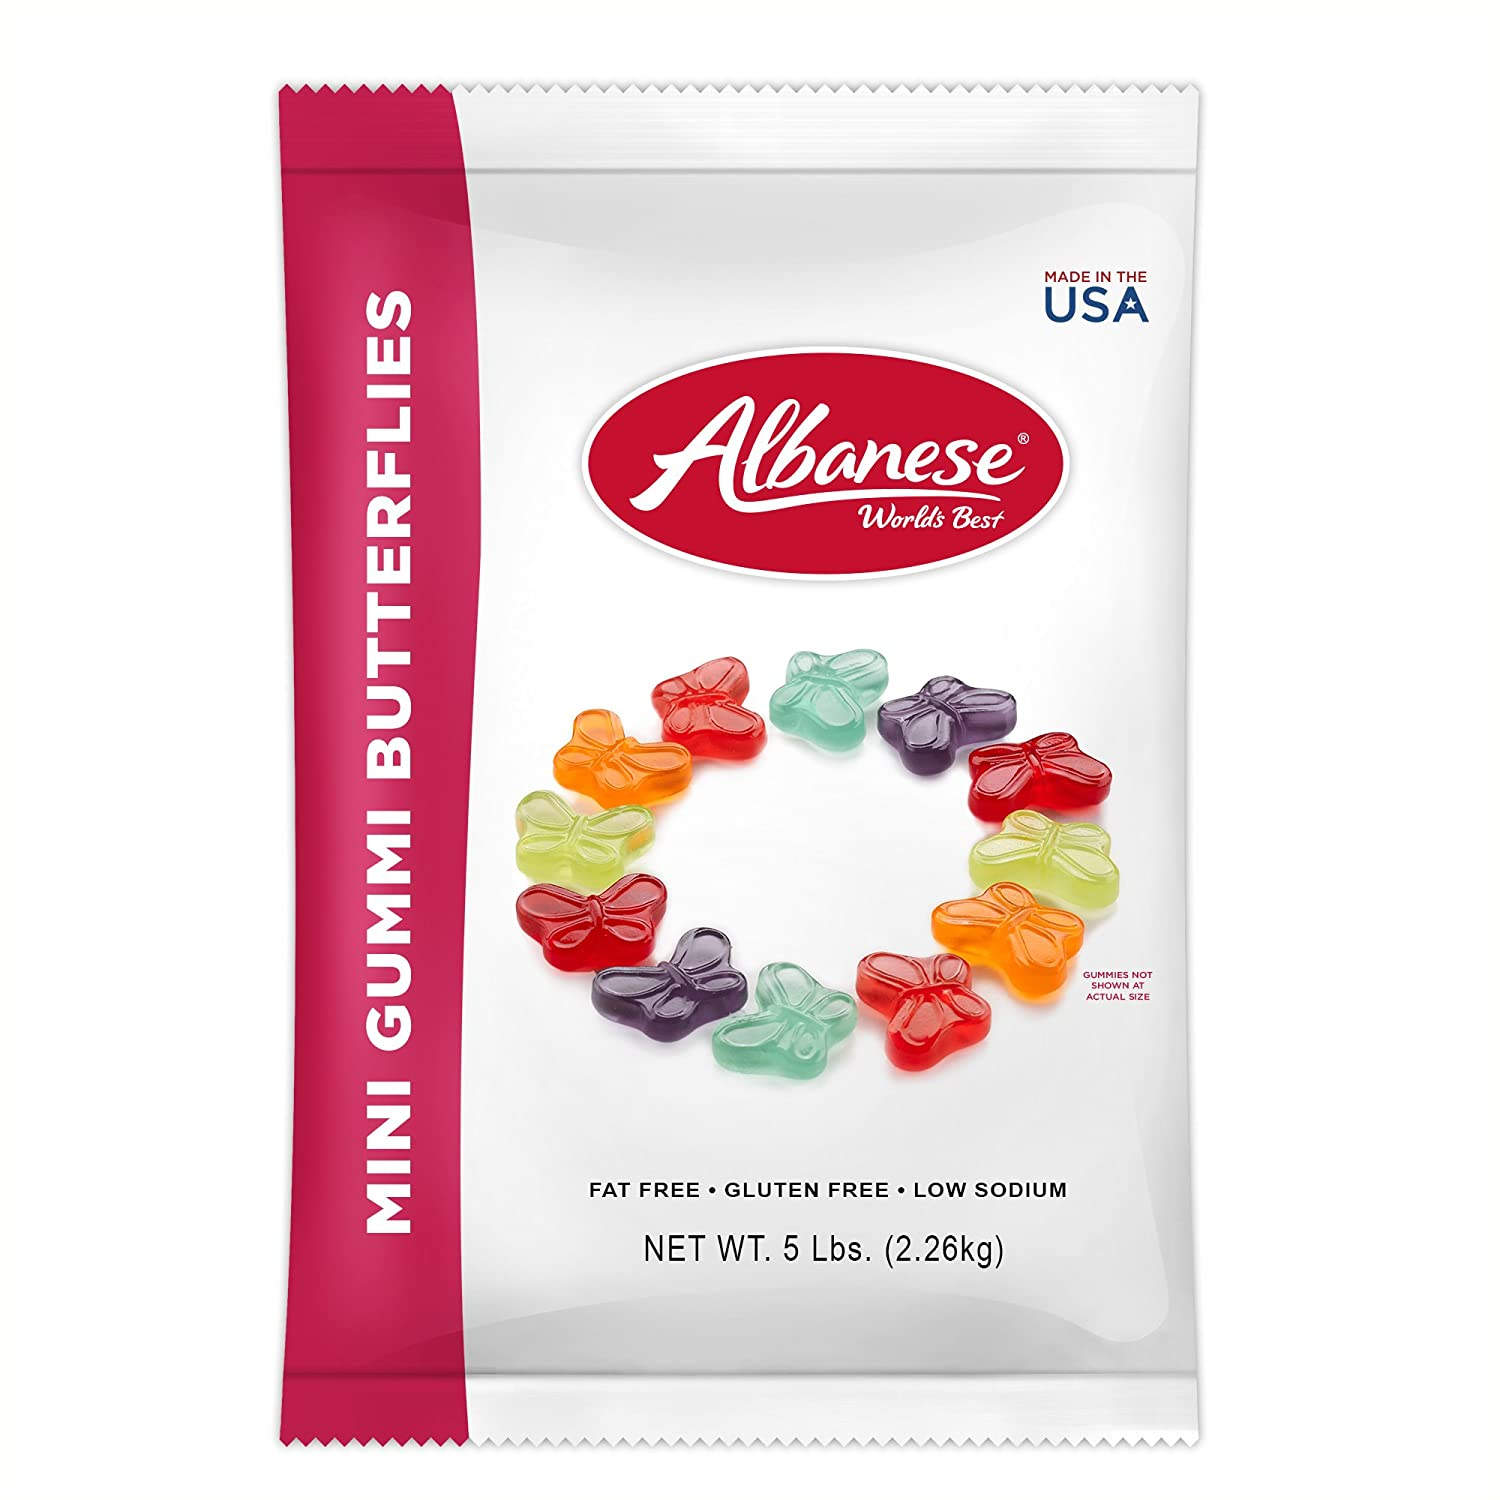 Albanese Candy Mini Gummi Butterflies 80 Ounce (Pack of 1), Gummi Candy Assorted Flavors: Grape, Strawberry, Orange, Blue Raspberry, Cherry, Green Apple; Gluten Free Dairy Free Fat Free Low Calorie